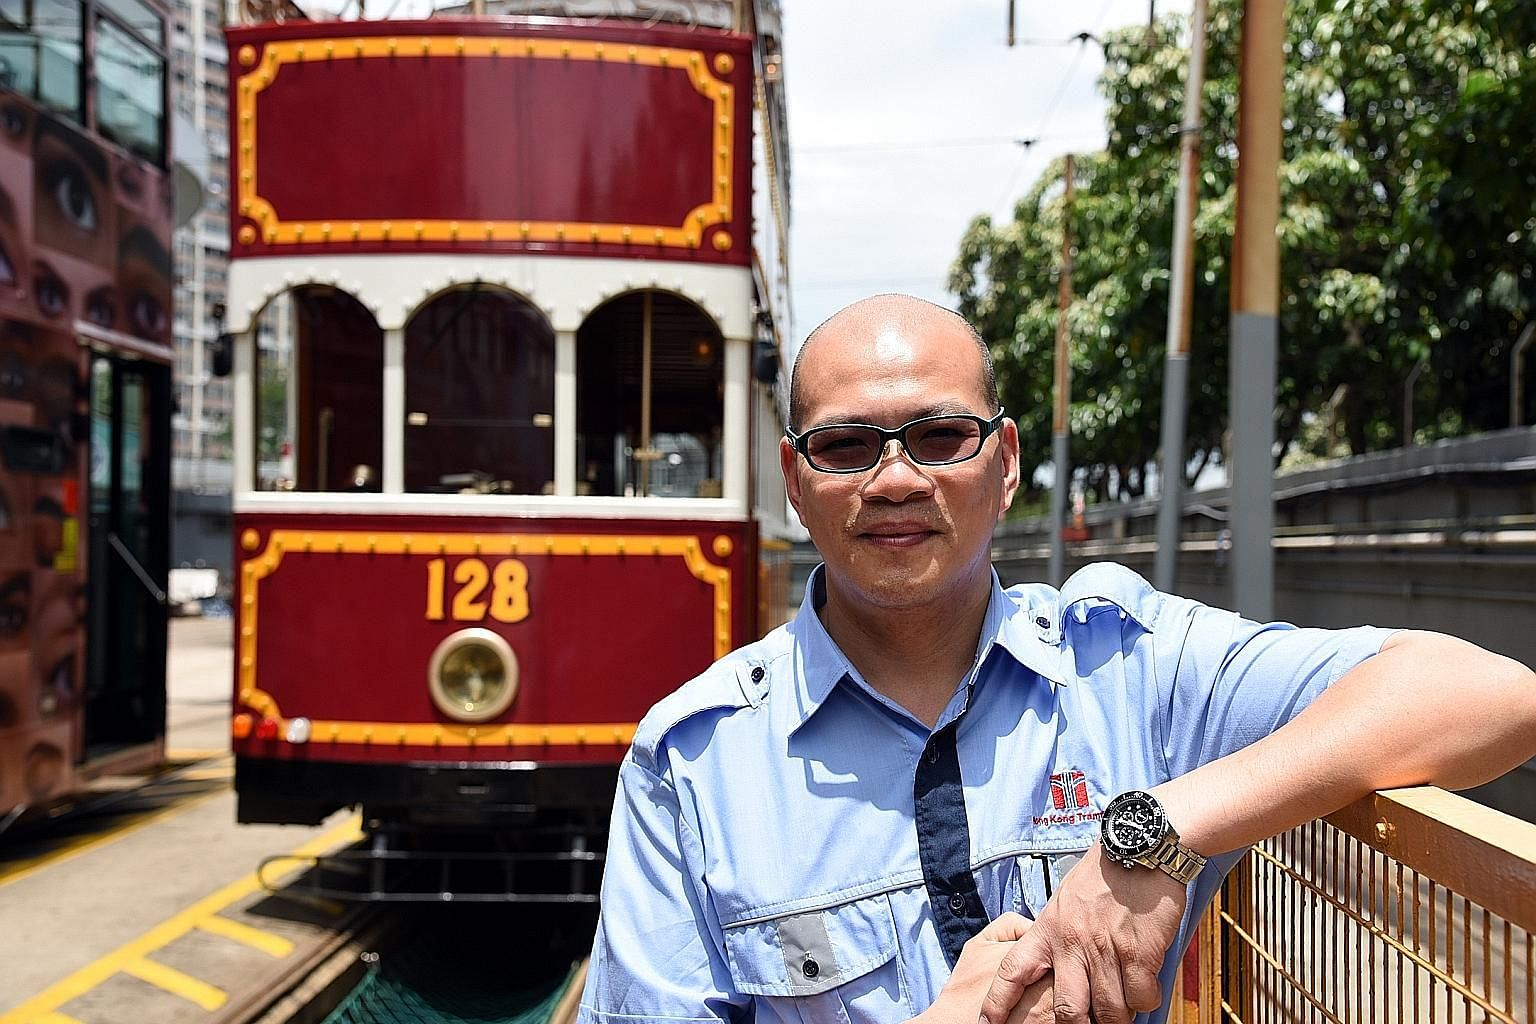 Tram captain Chan Siu Chung remembers a memorable trip when he helped a young man propose - successfully - to his girlfriend on board an antique tram (behind him).